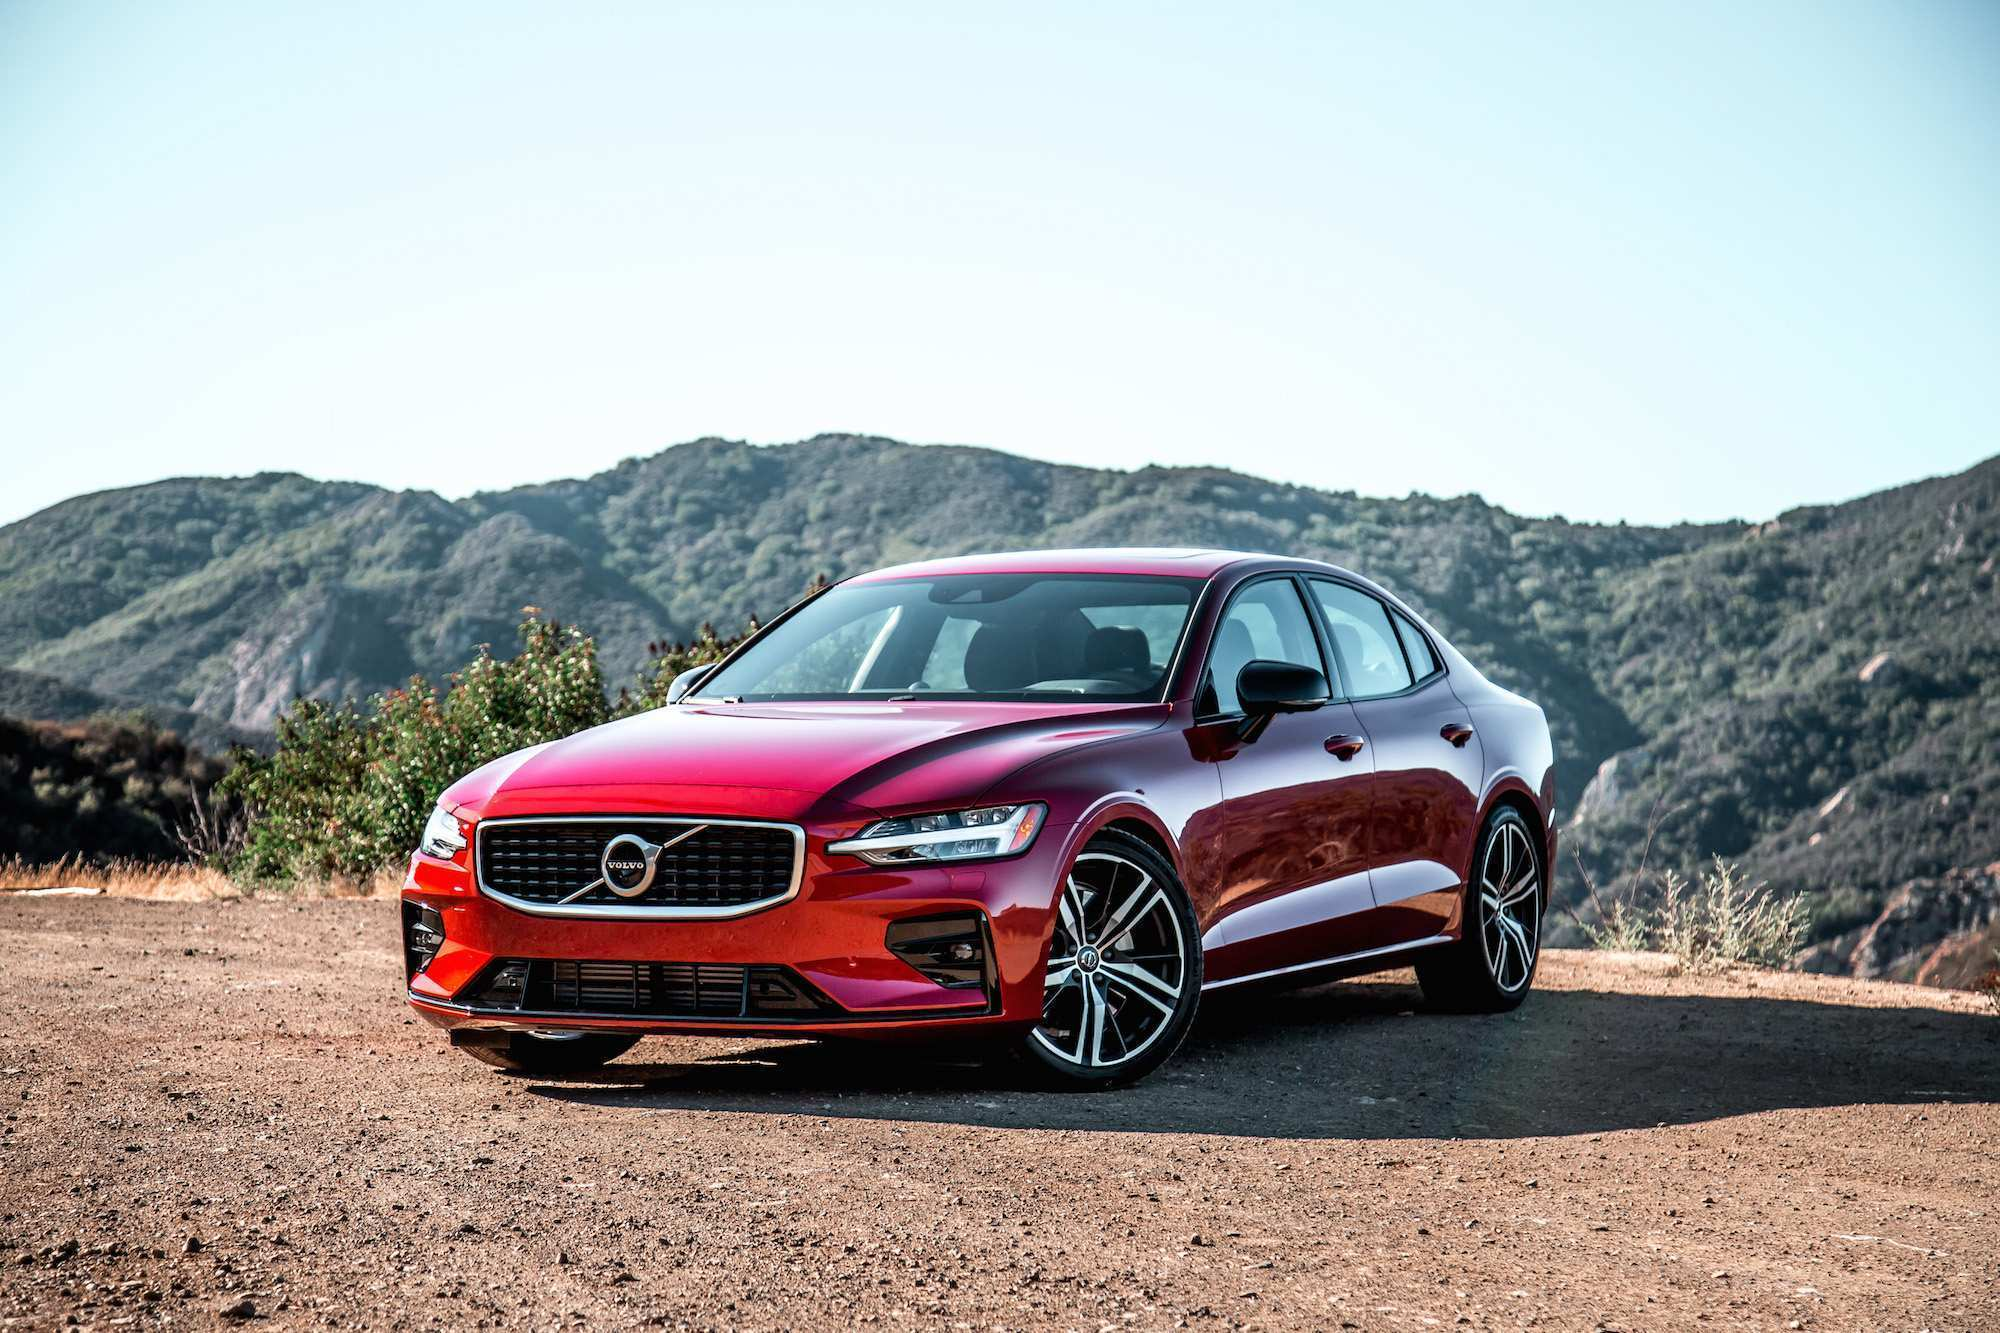 90 All New Volvo S60 2020 News Performance with Volvo S60 2020 News